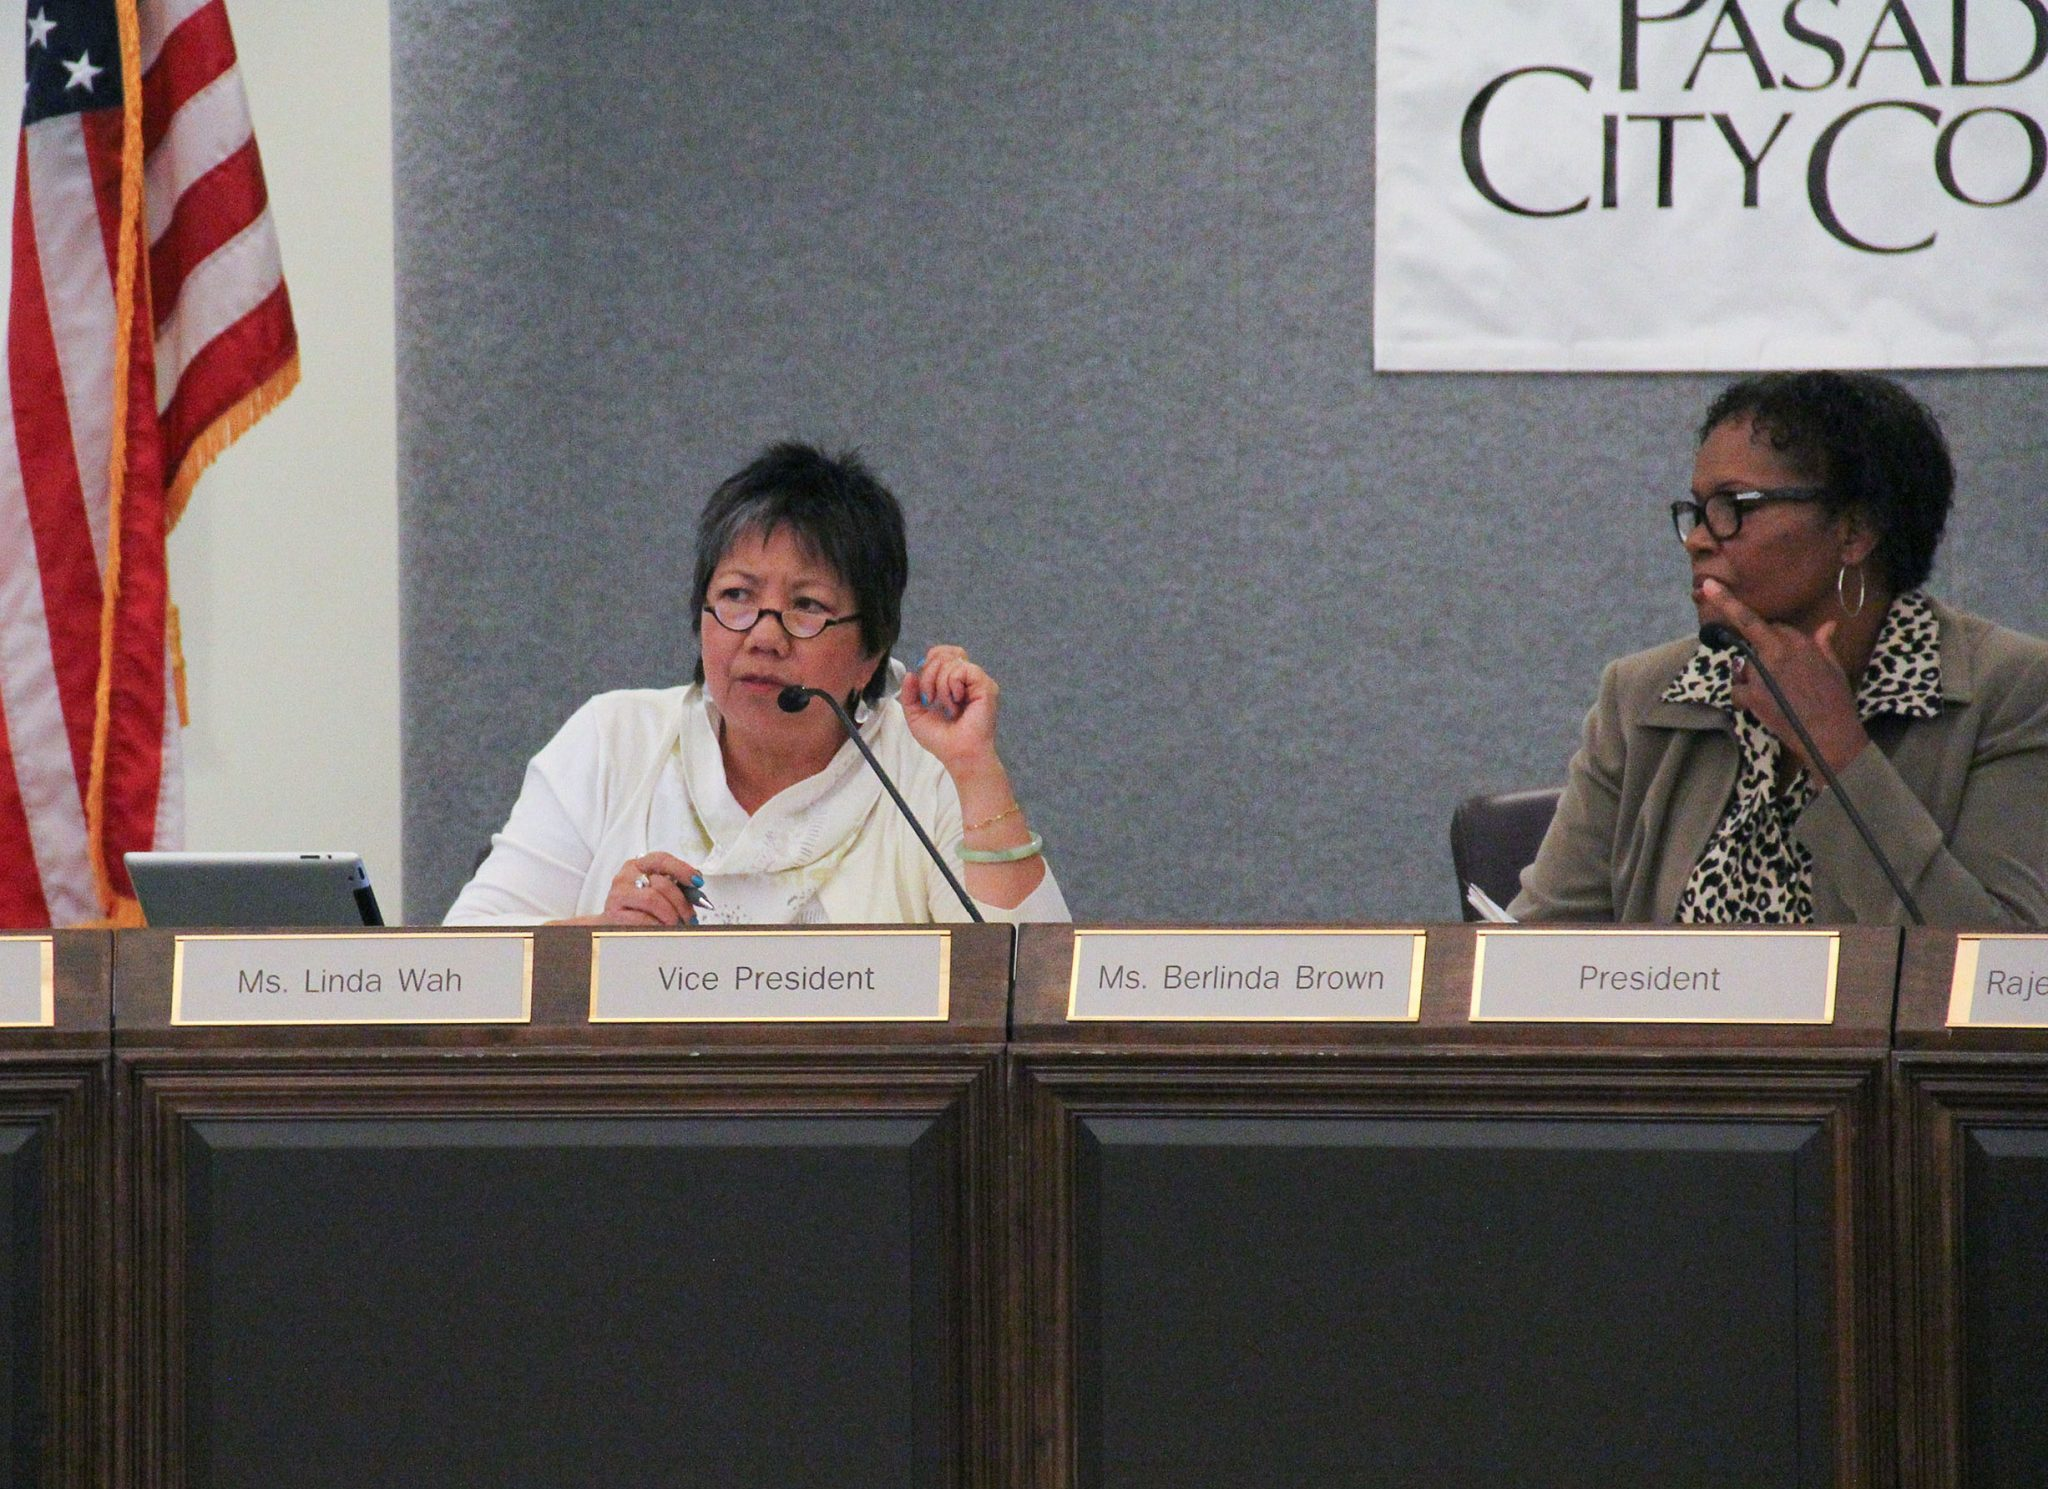 Anthony Galindo/Courier Ms. Linda Wah, vice president of the Board of Trustees, gives feedback on public comments at the Board of Trustees meeting on Thursday, September 2, 2015.